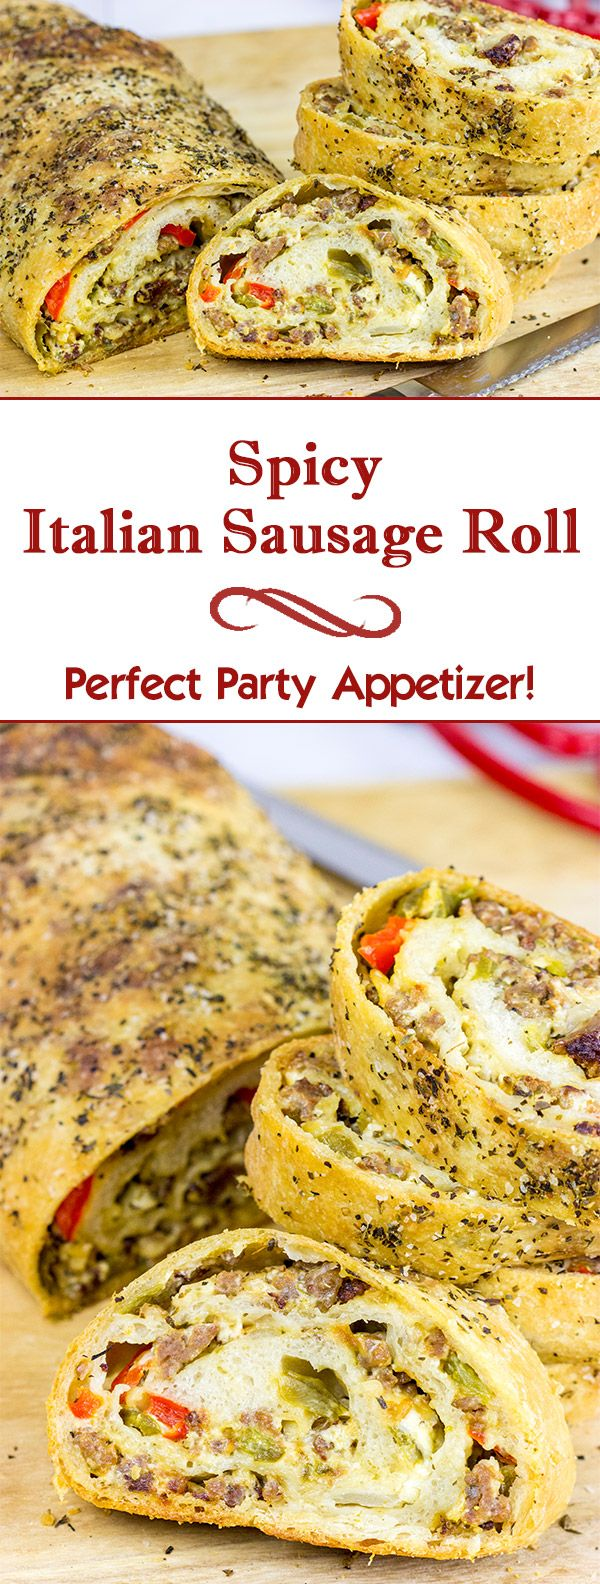 Spicy Italian Sausage Roll